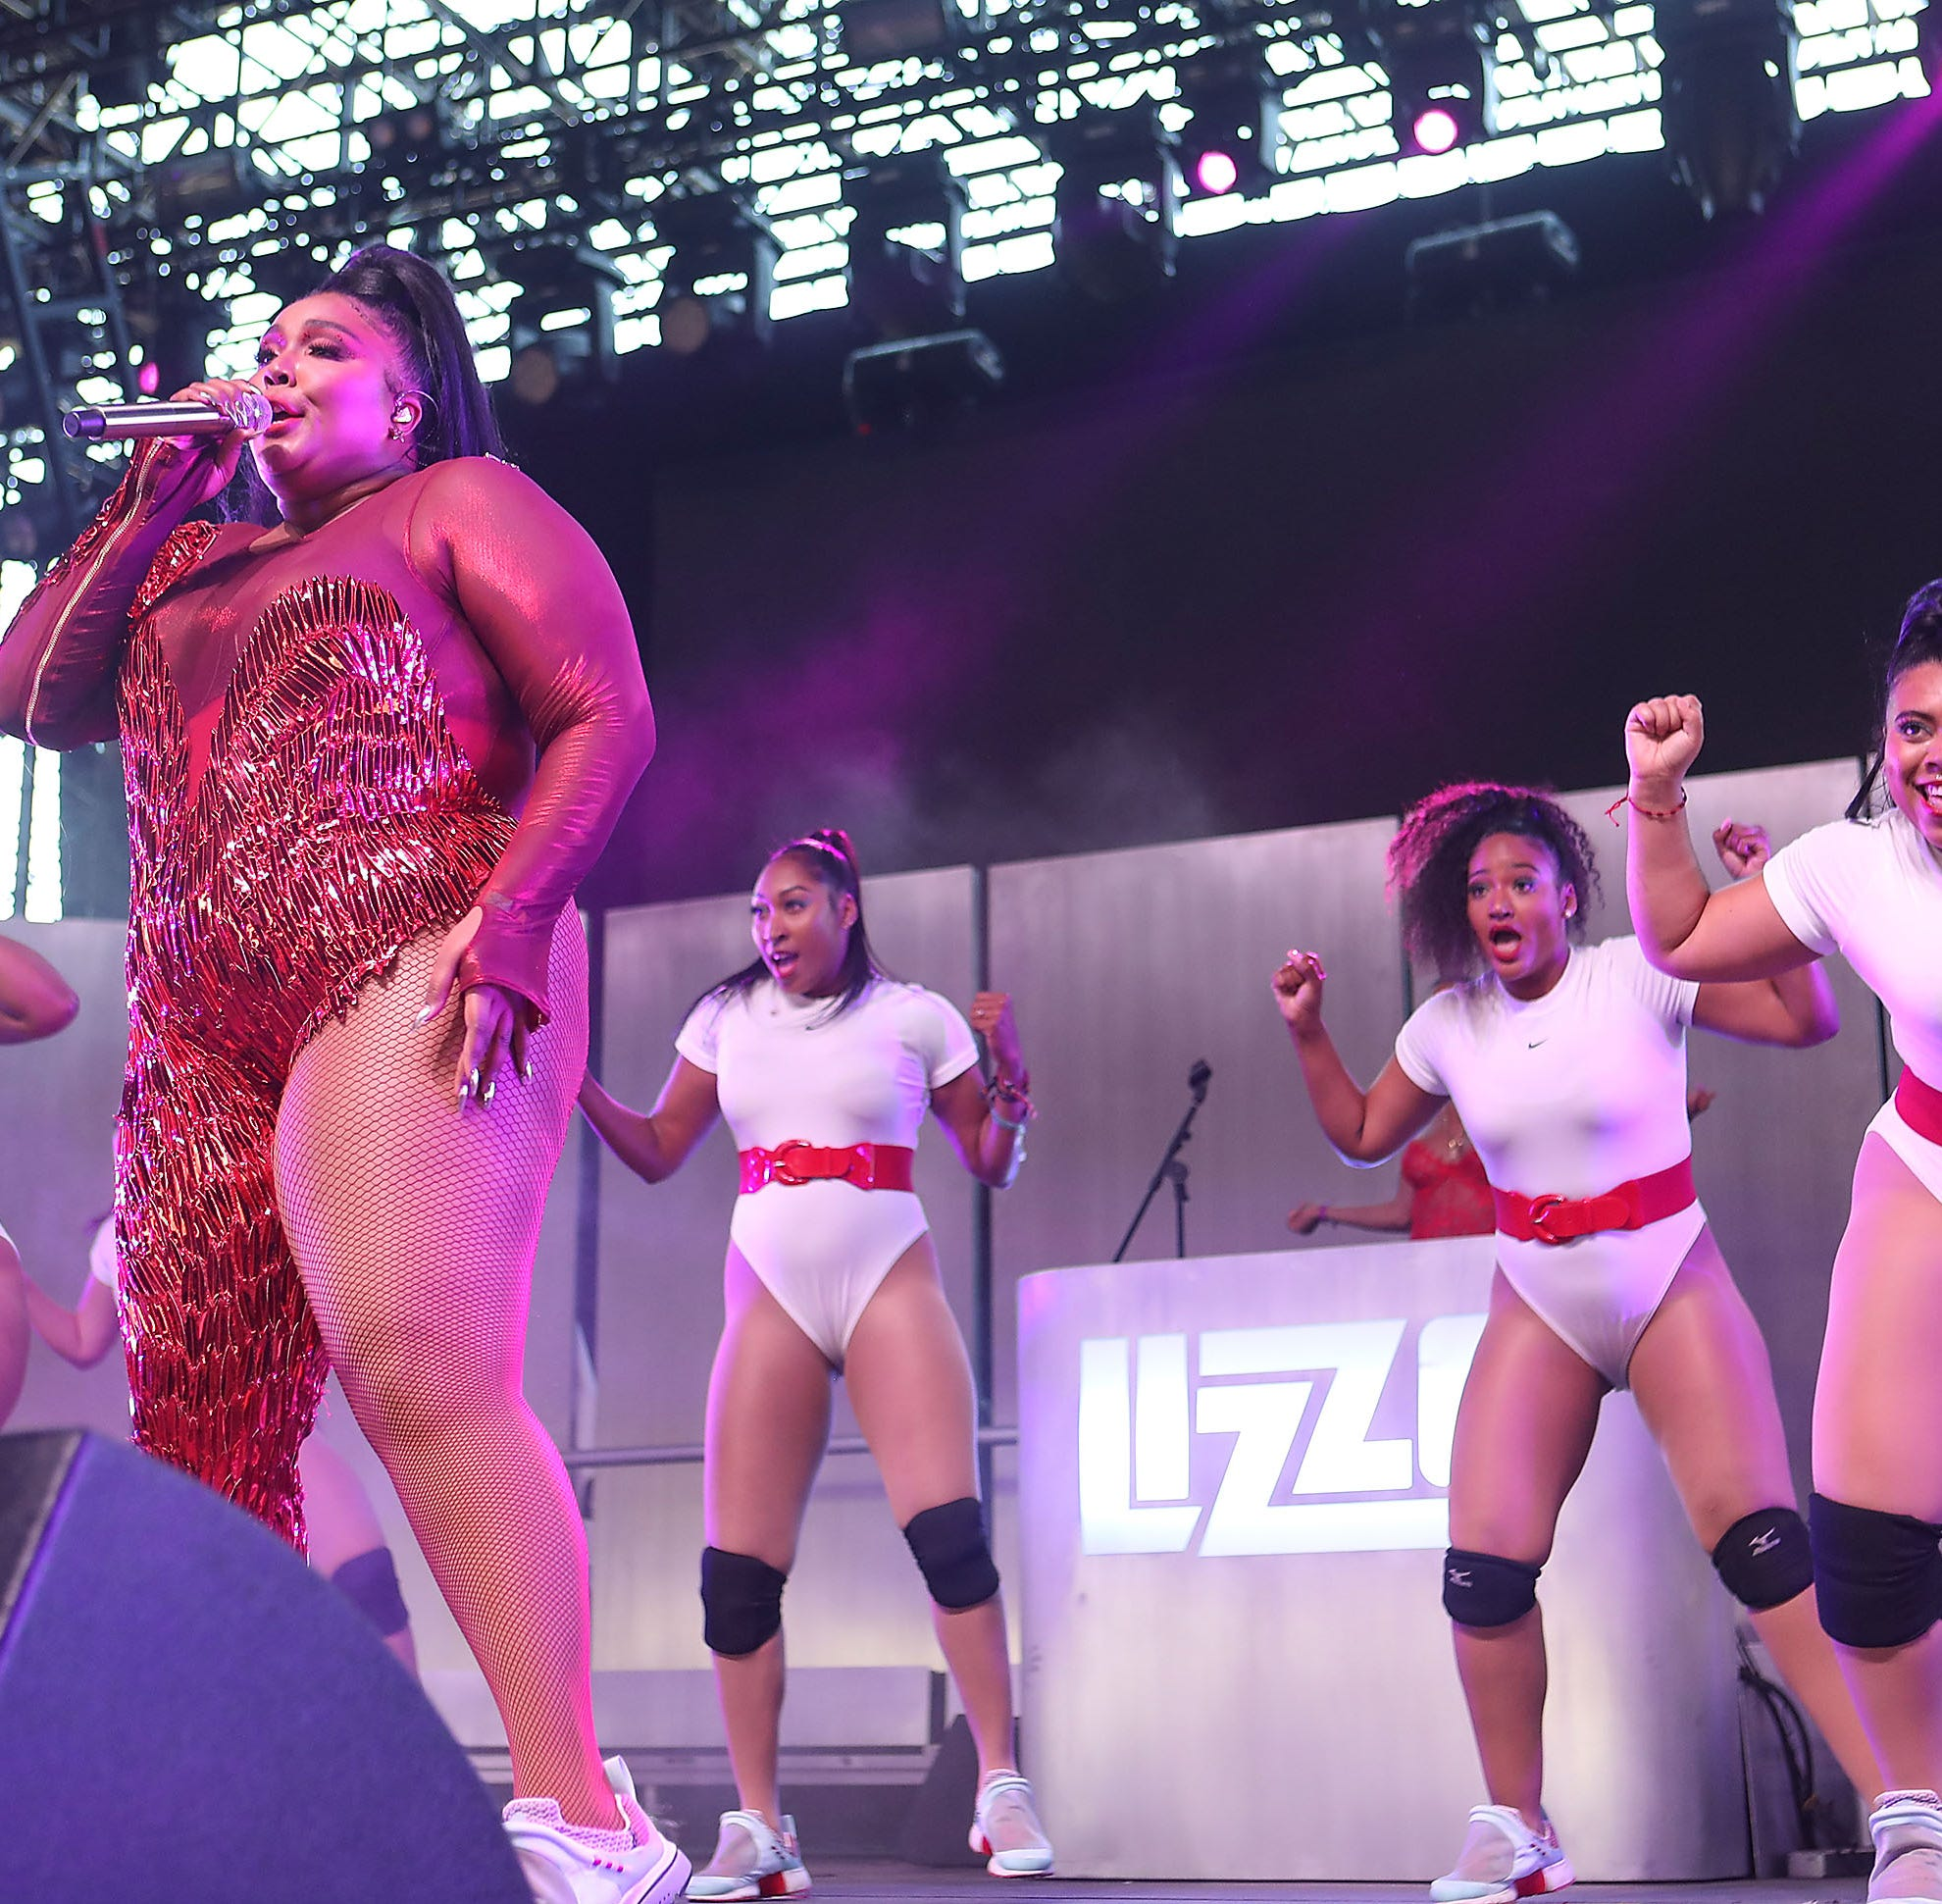 Lizzo at Coachella:  Technical issues be damned, she delivers power-packed performance and won't be denied